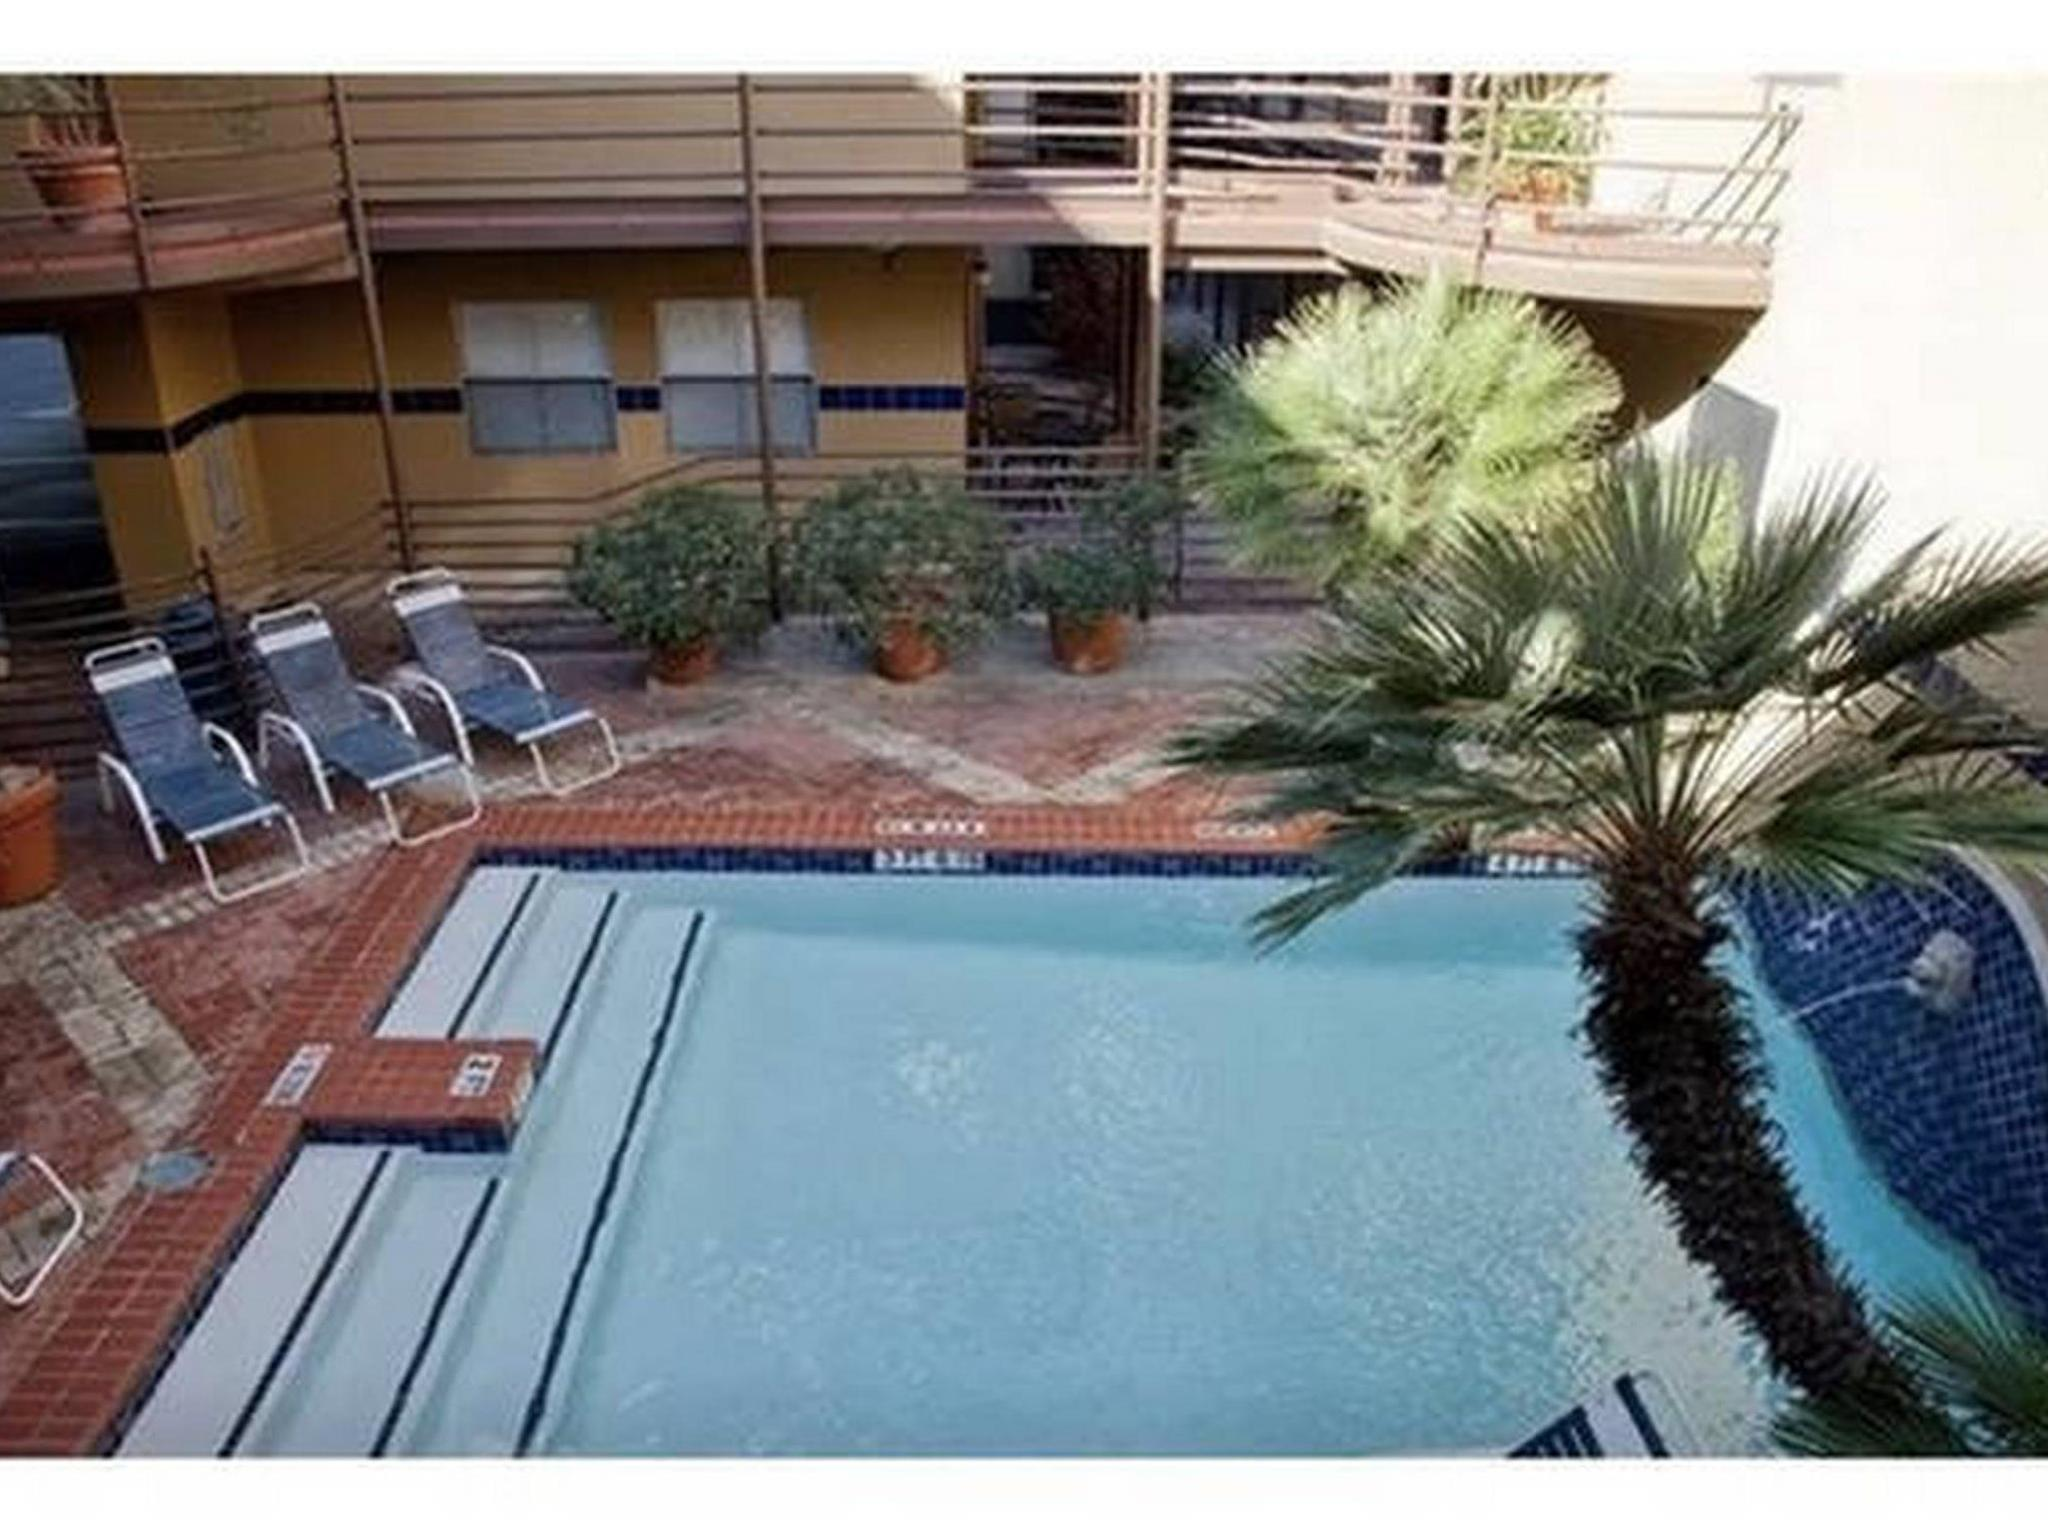 Two Bedroom Loft Condo - Next to Convention Center